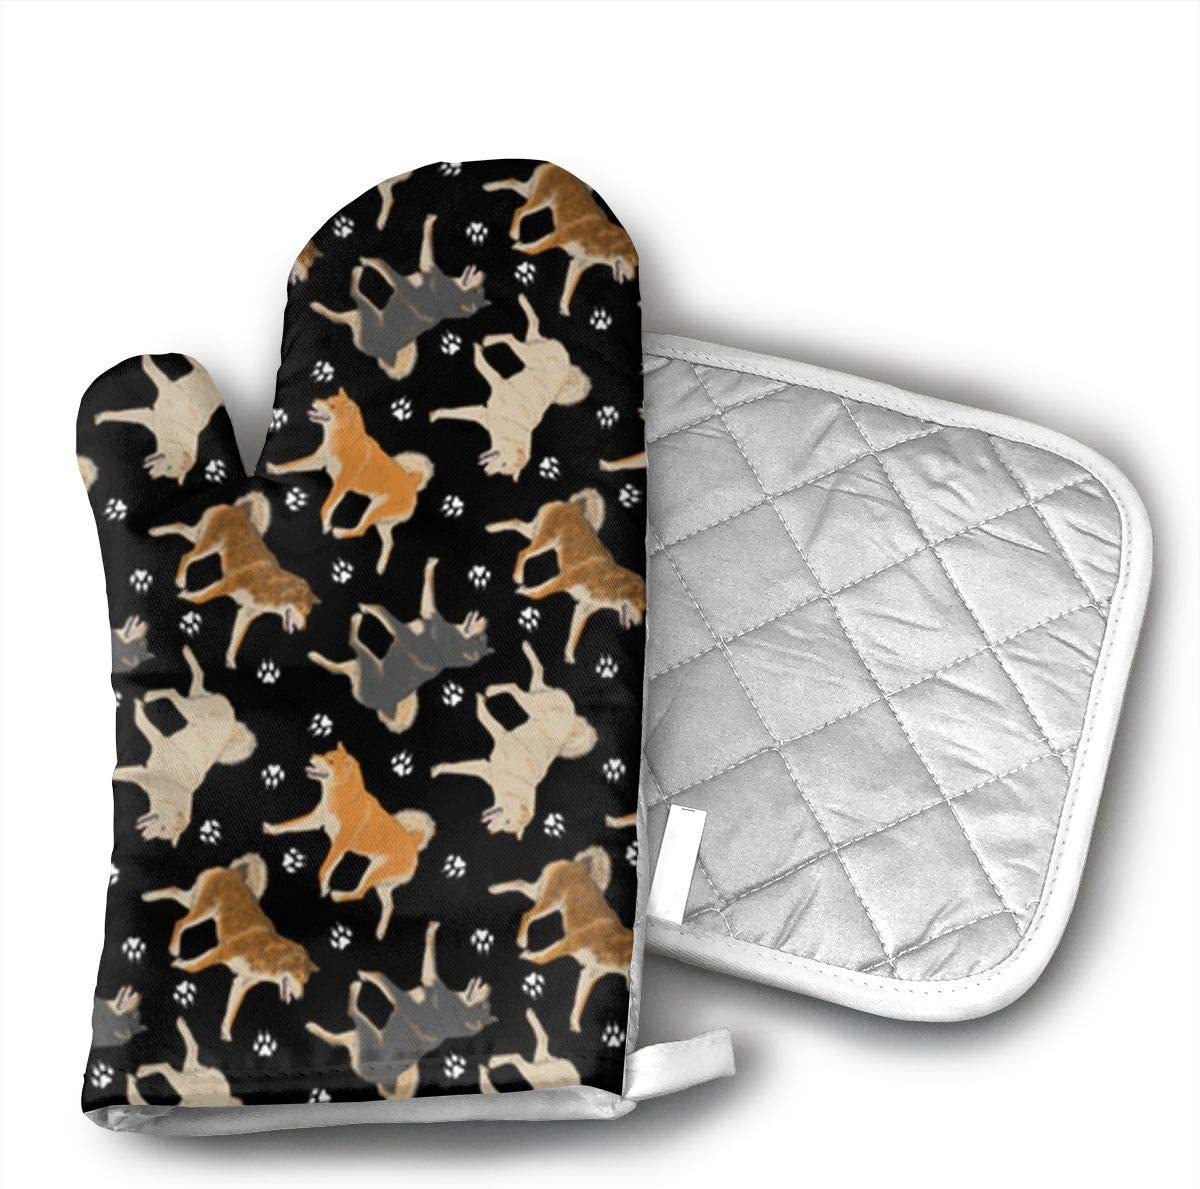 CHWEYAQ ZVNQYGFGA69 Shiba Inu Fabric in Black Oven Gloves, Smart Home, Long, Mittens, Heat Resistant, Extra Thick, Quilted